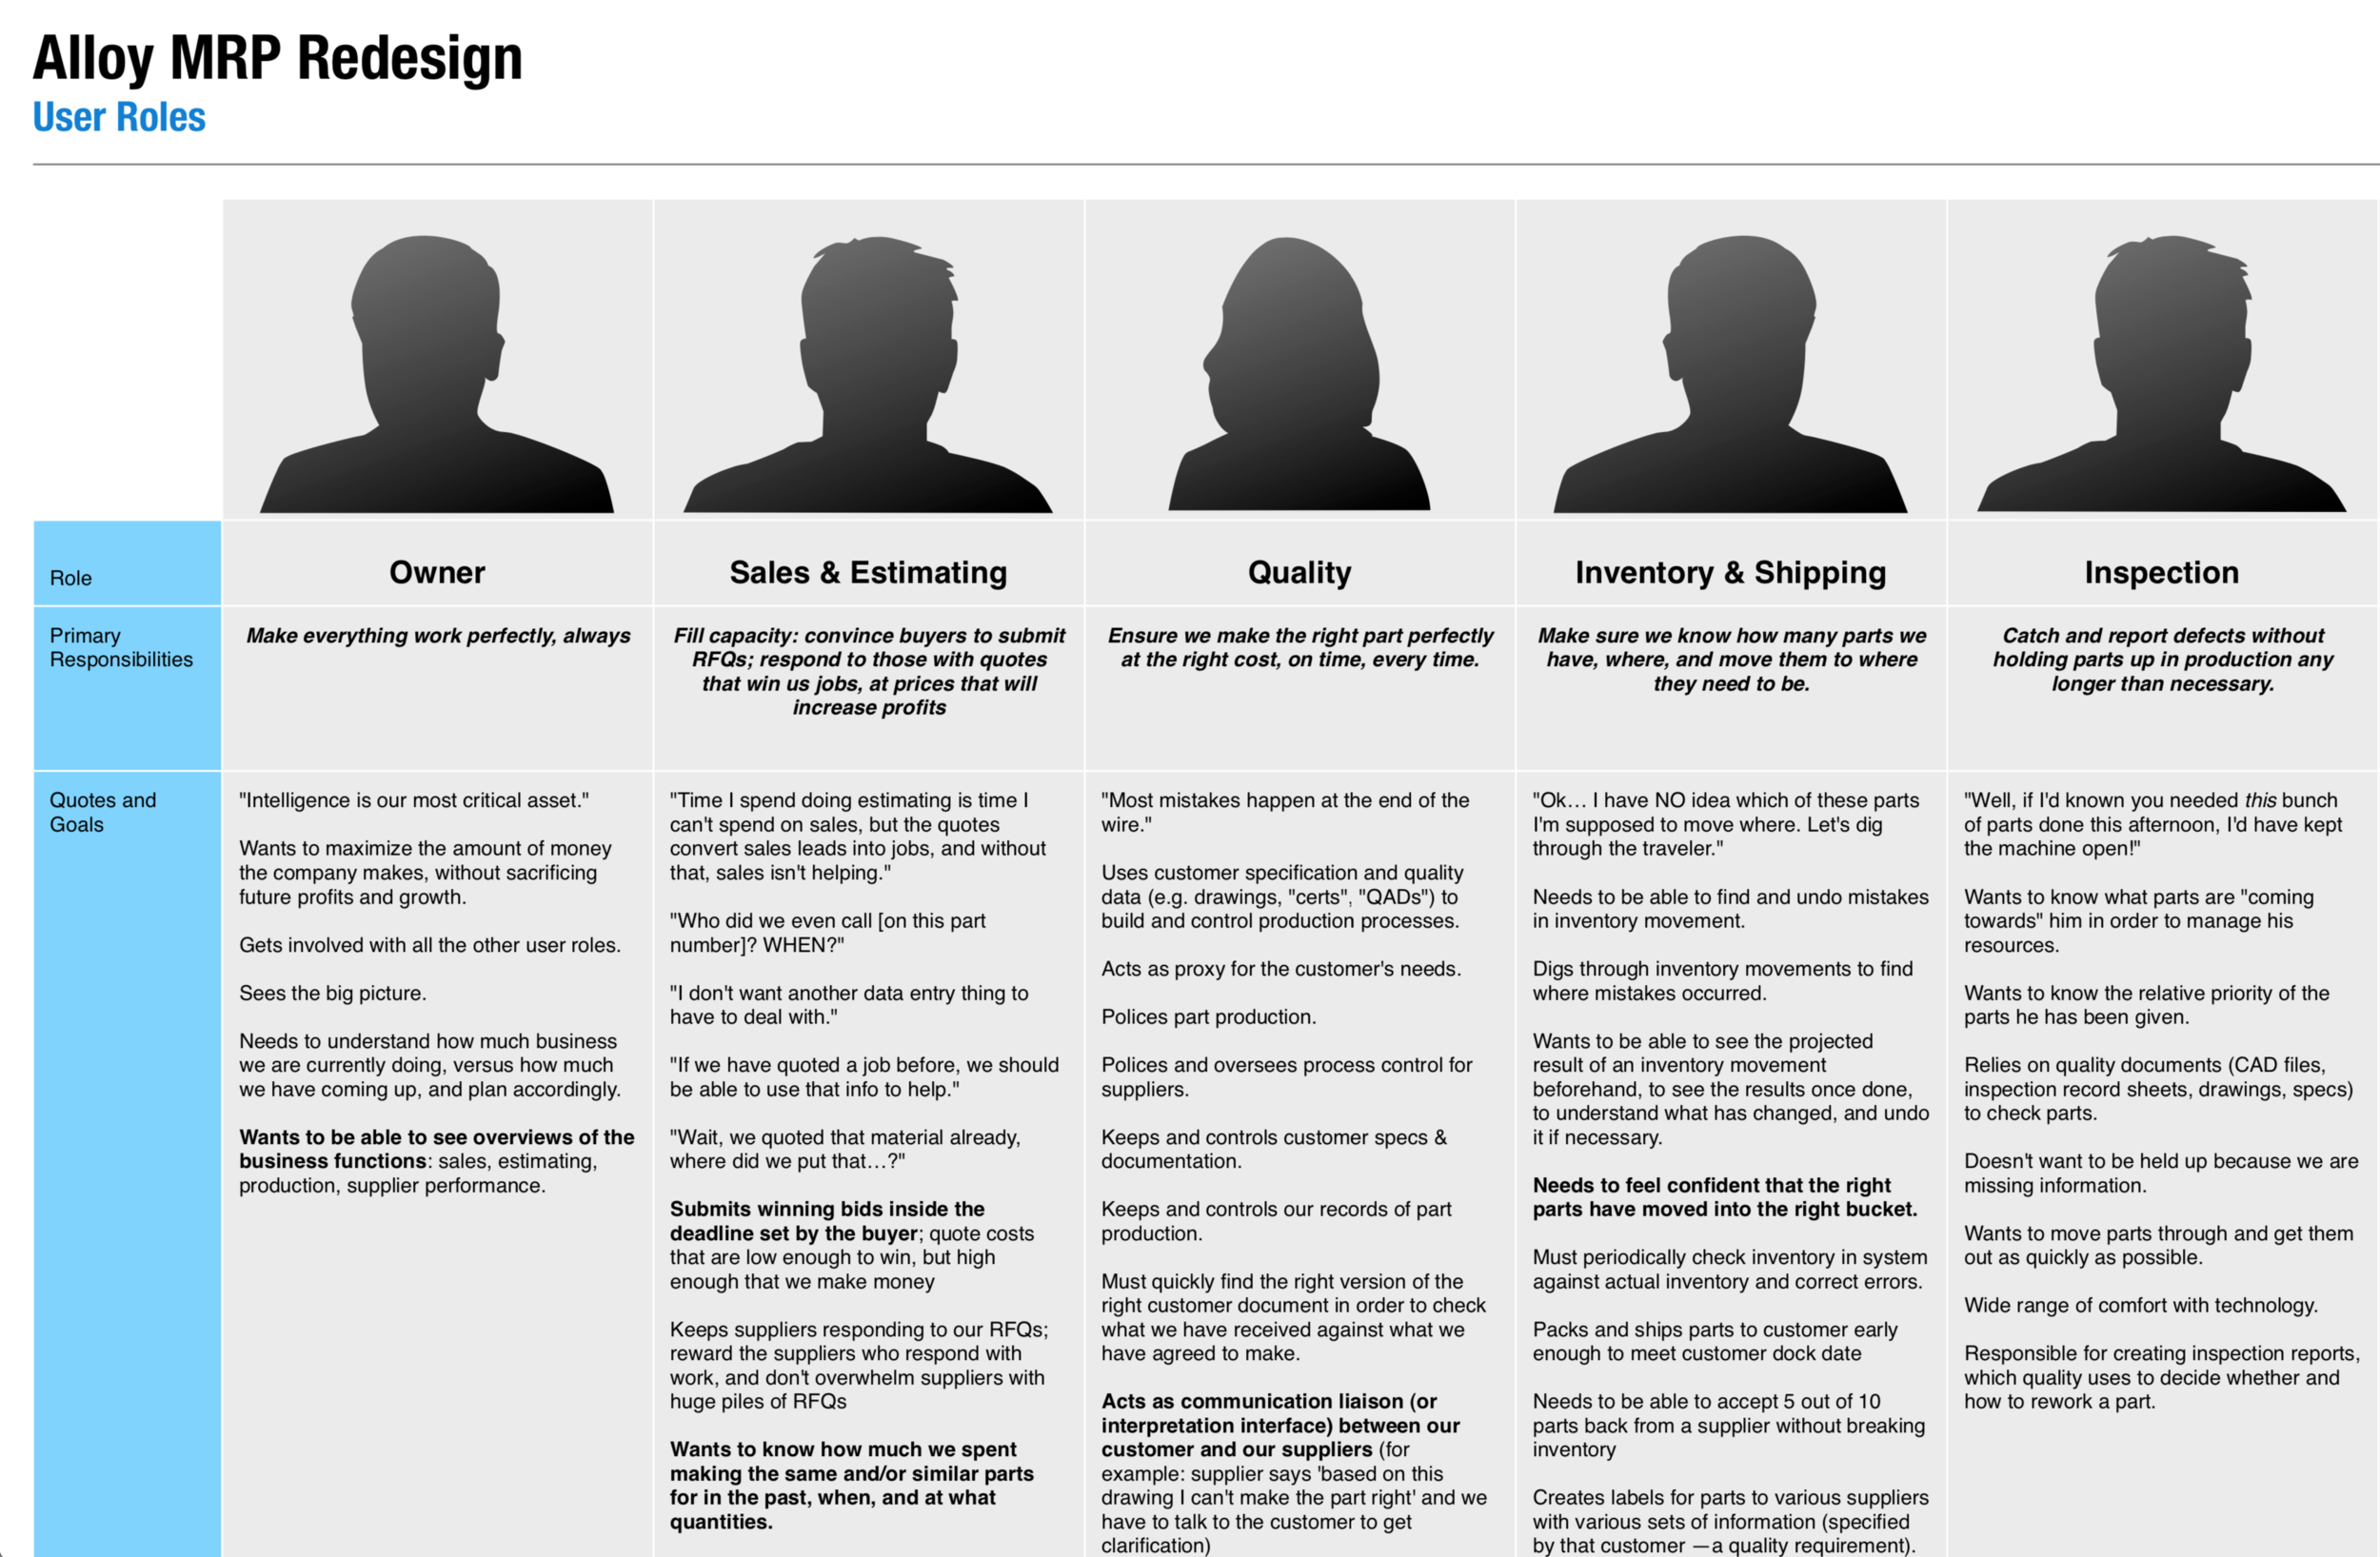 For this project, I emphasized roles, rather than personas, as we had many roles, and very few users per role.